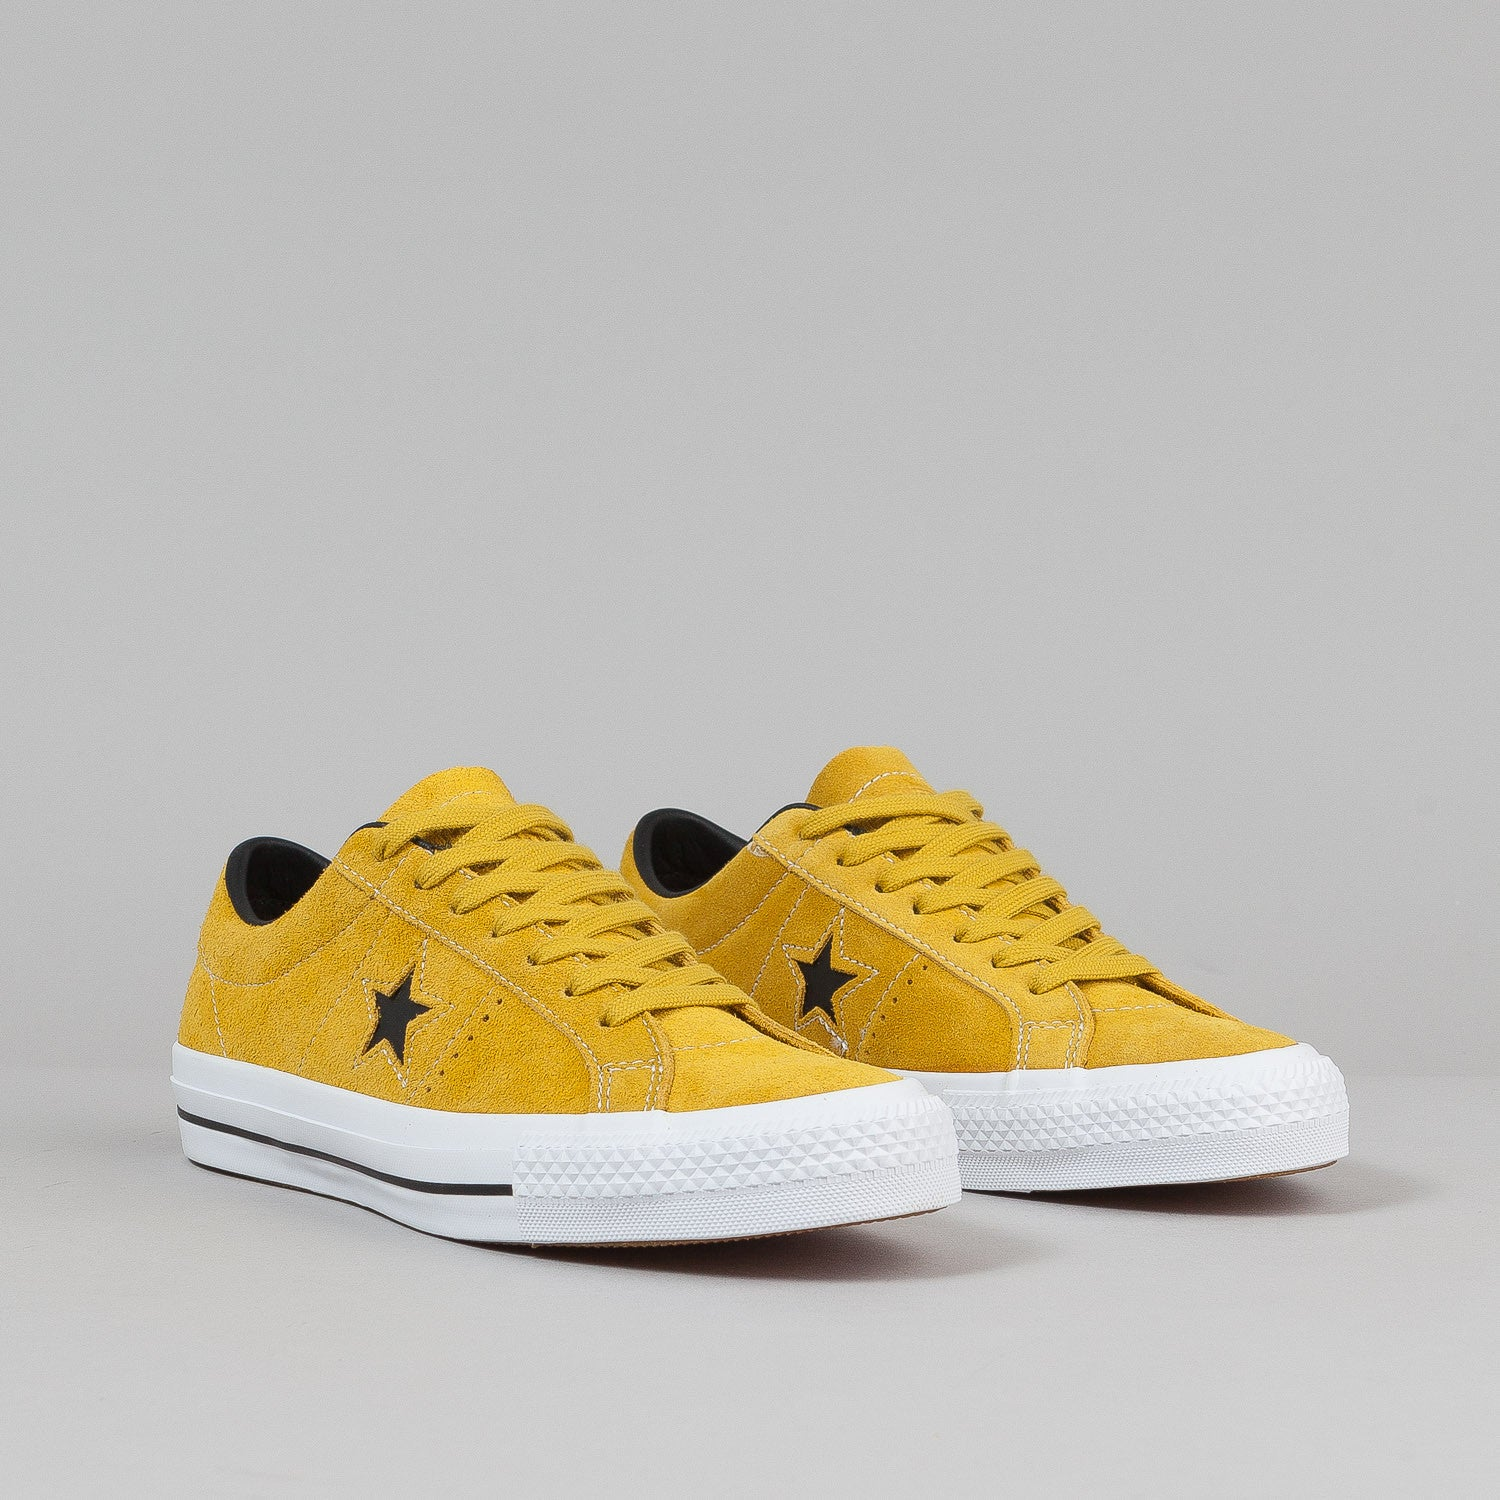 Converse One Star Pro Ox QS Shoes - Yellow Bird / Black / White